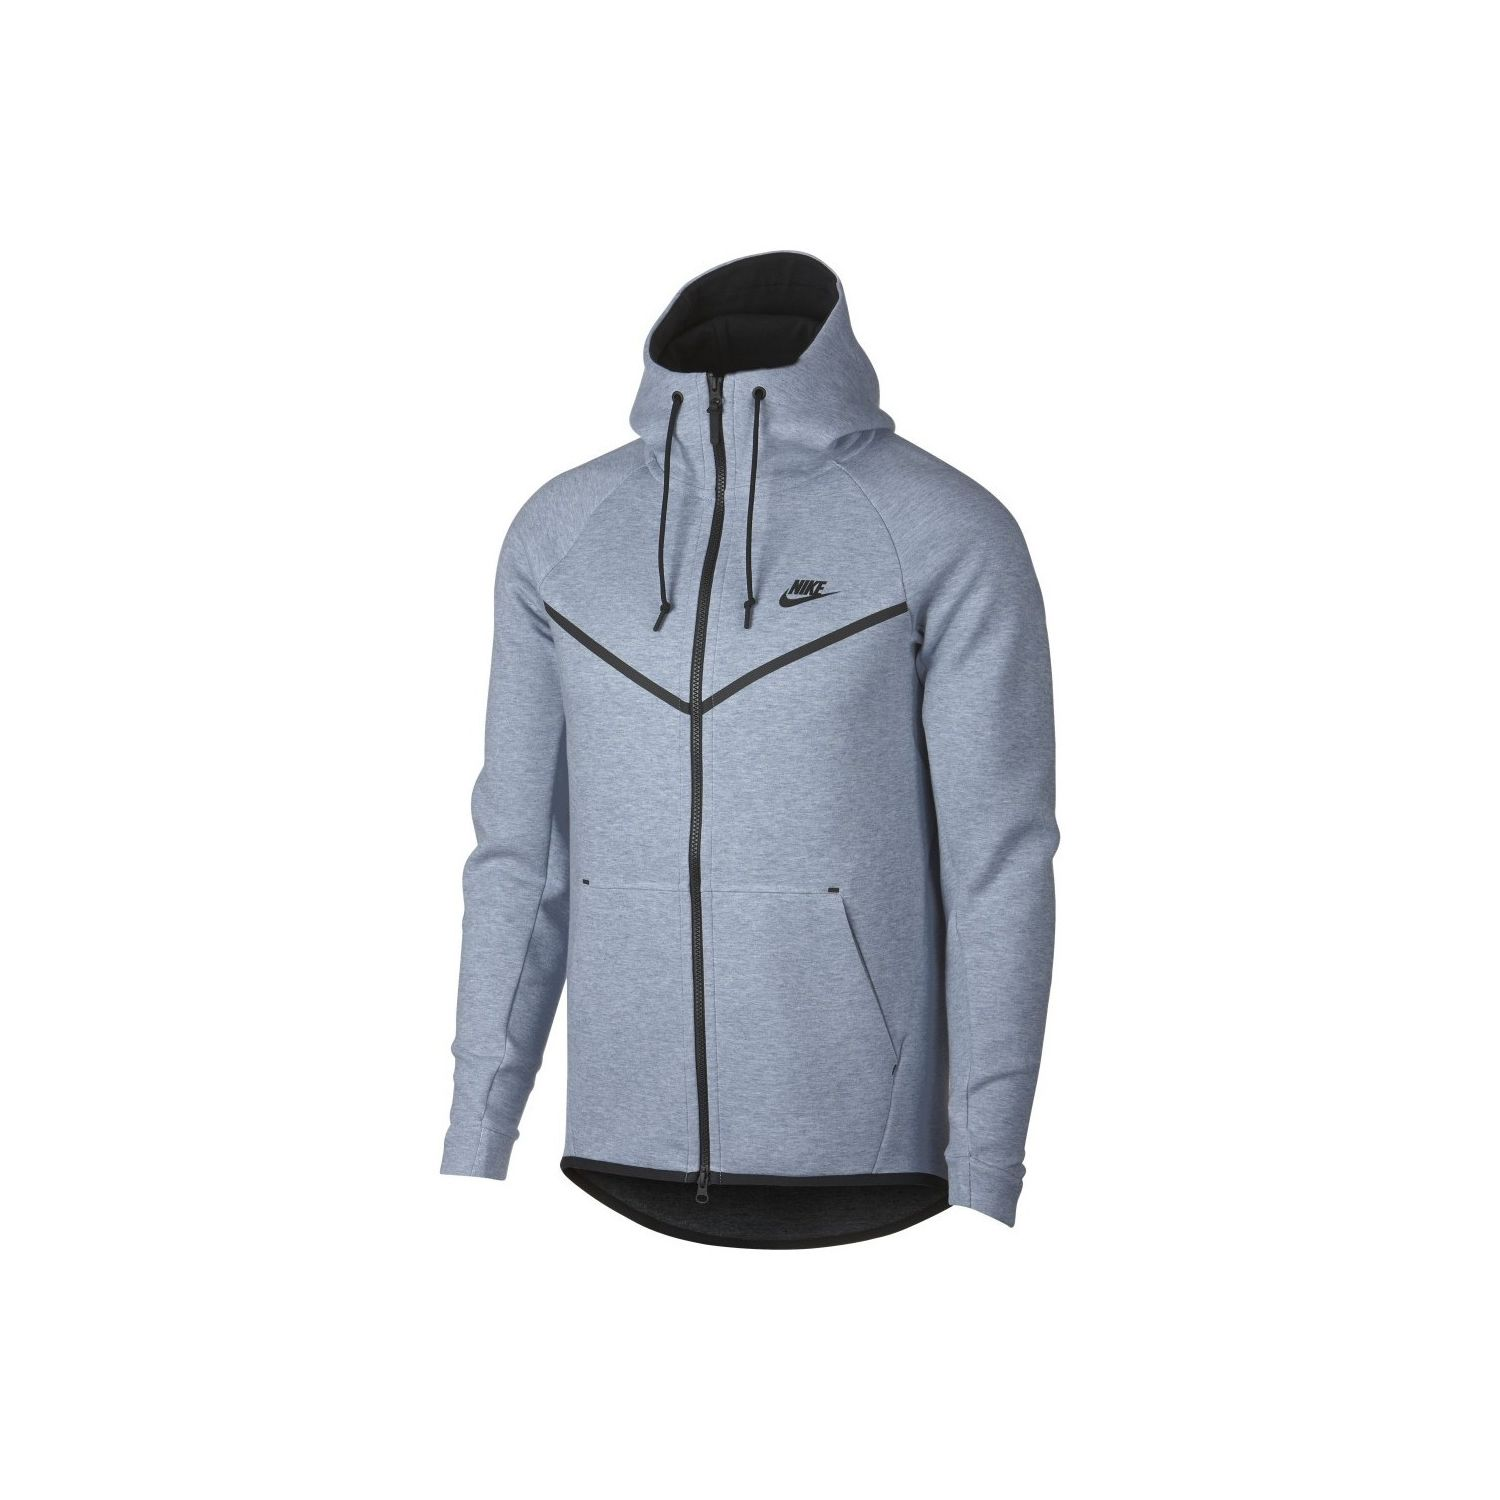 7b485944c18c4 NIKE- Sweat à capuche Sportswear Tech Fleece Windrunner - 805144-023 - Gris